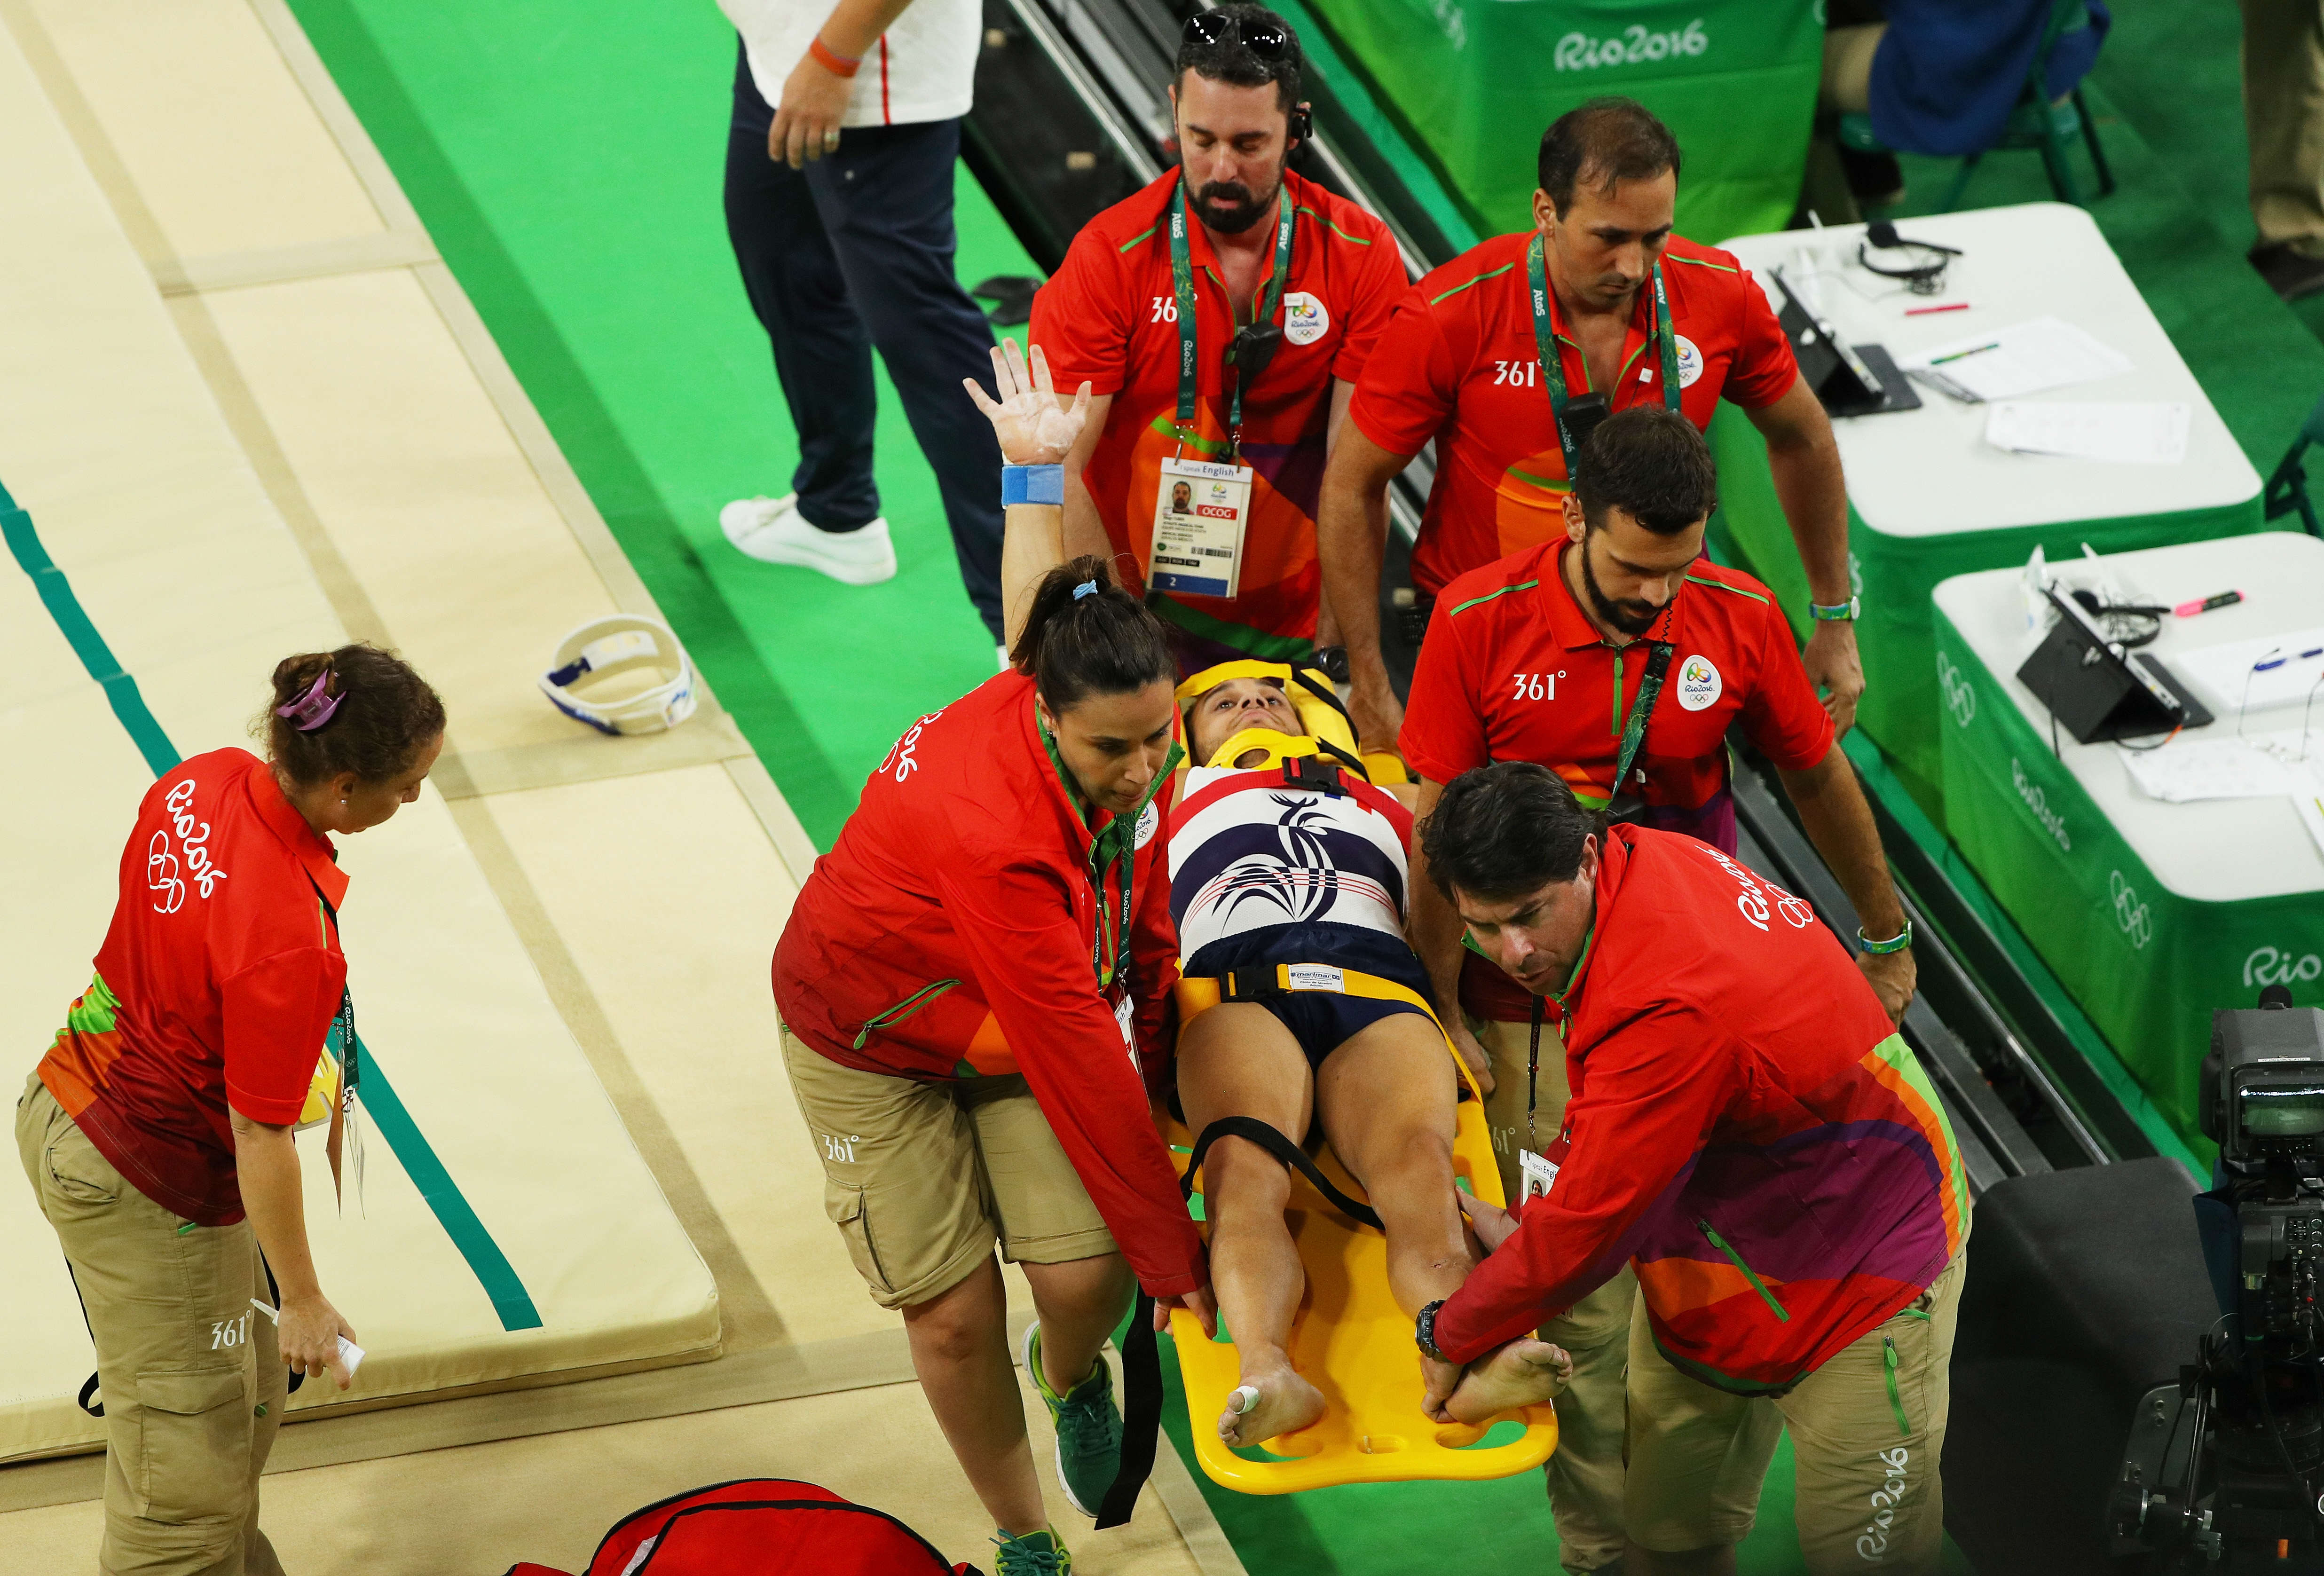 Basketball Players Gruesome Leg Injury Leaves Other Players Praying On Court leg1